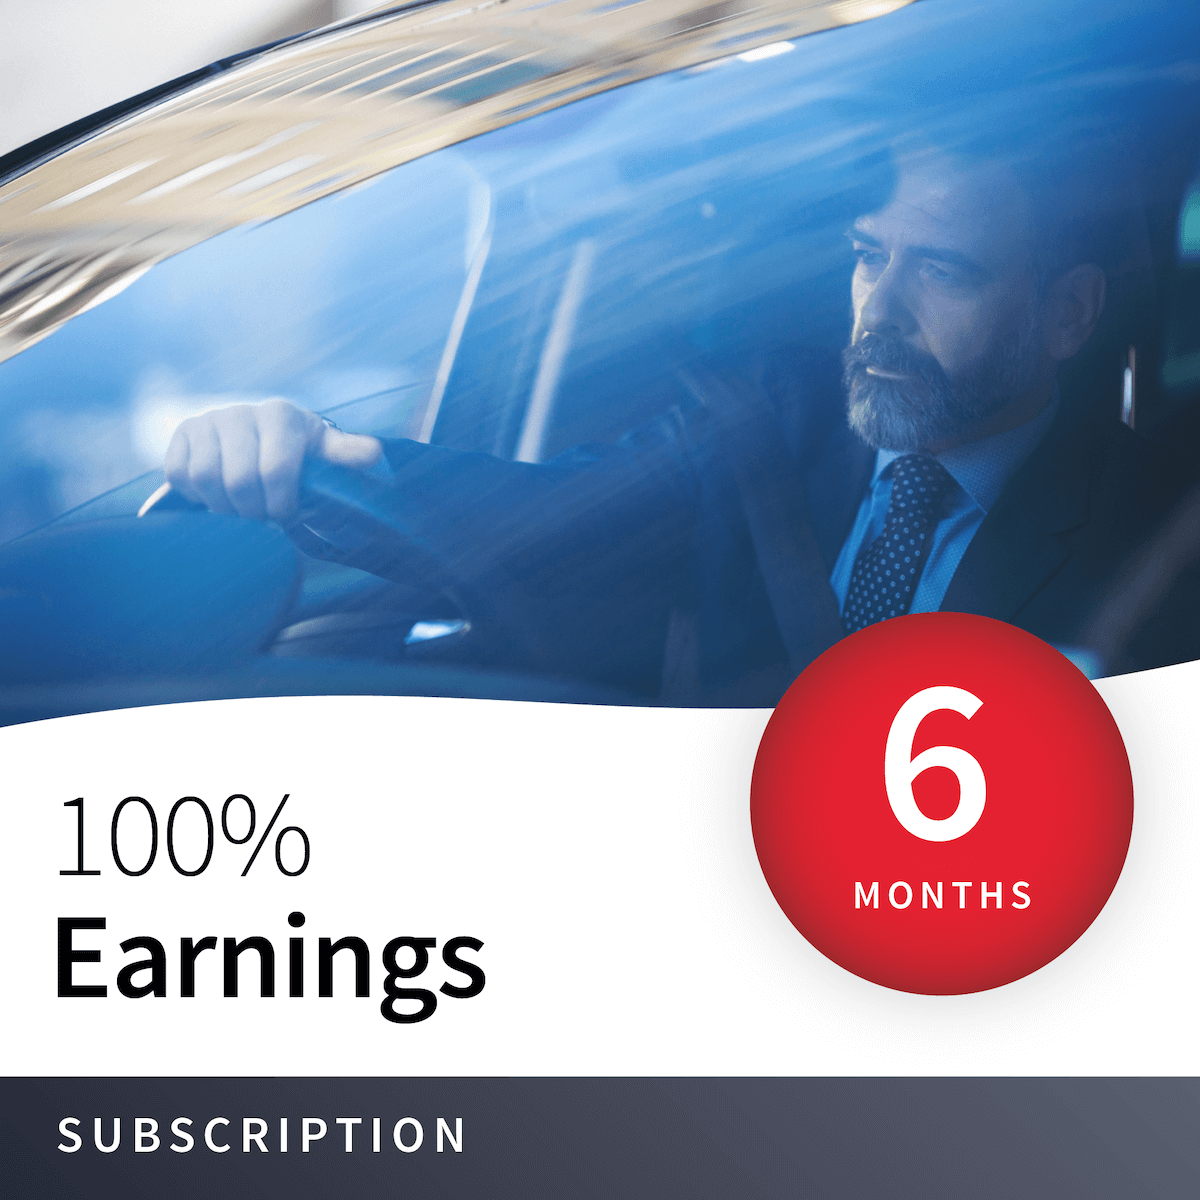 100% Earnings - 6 Months 1